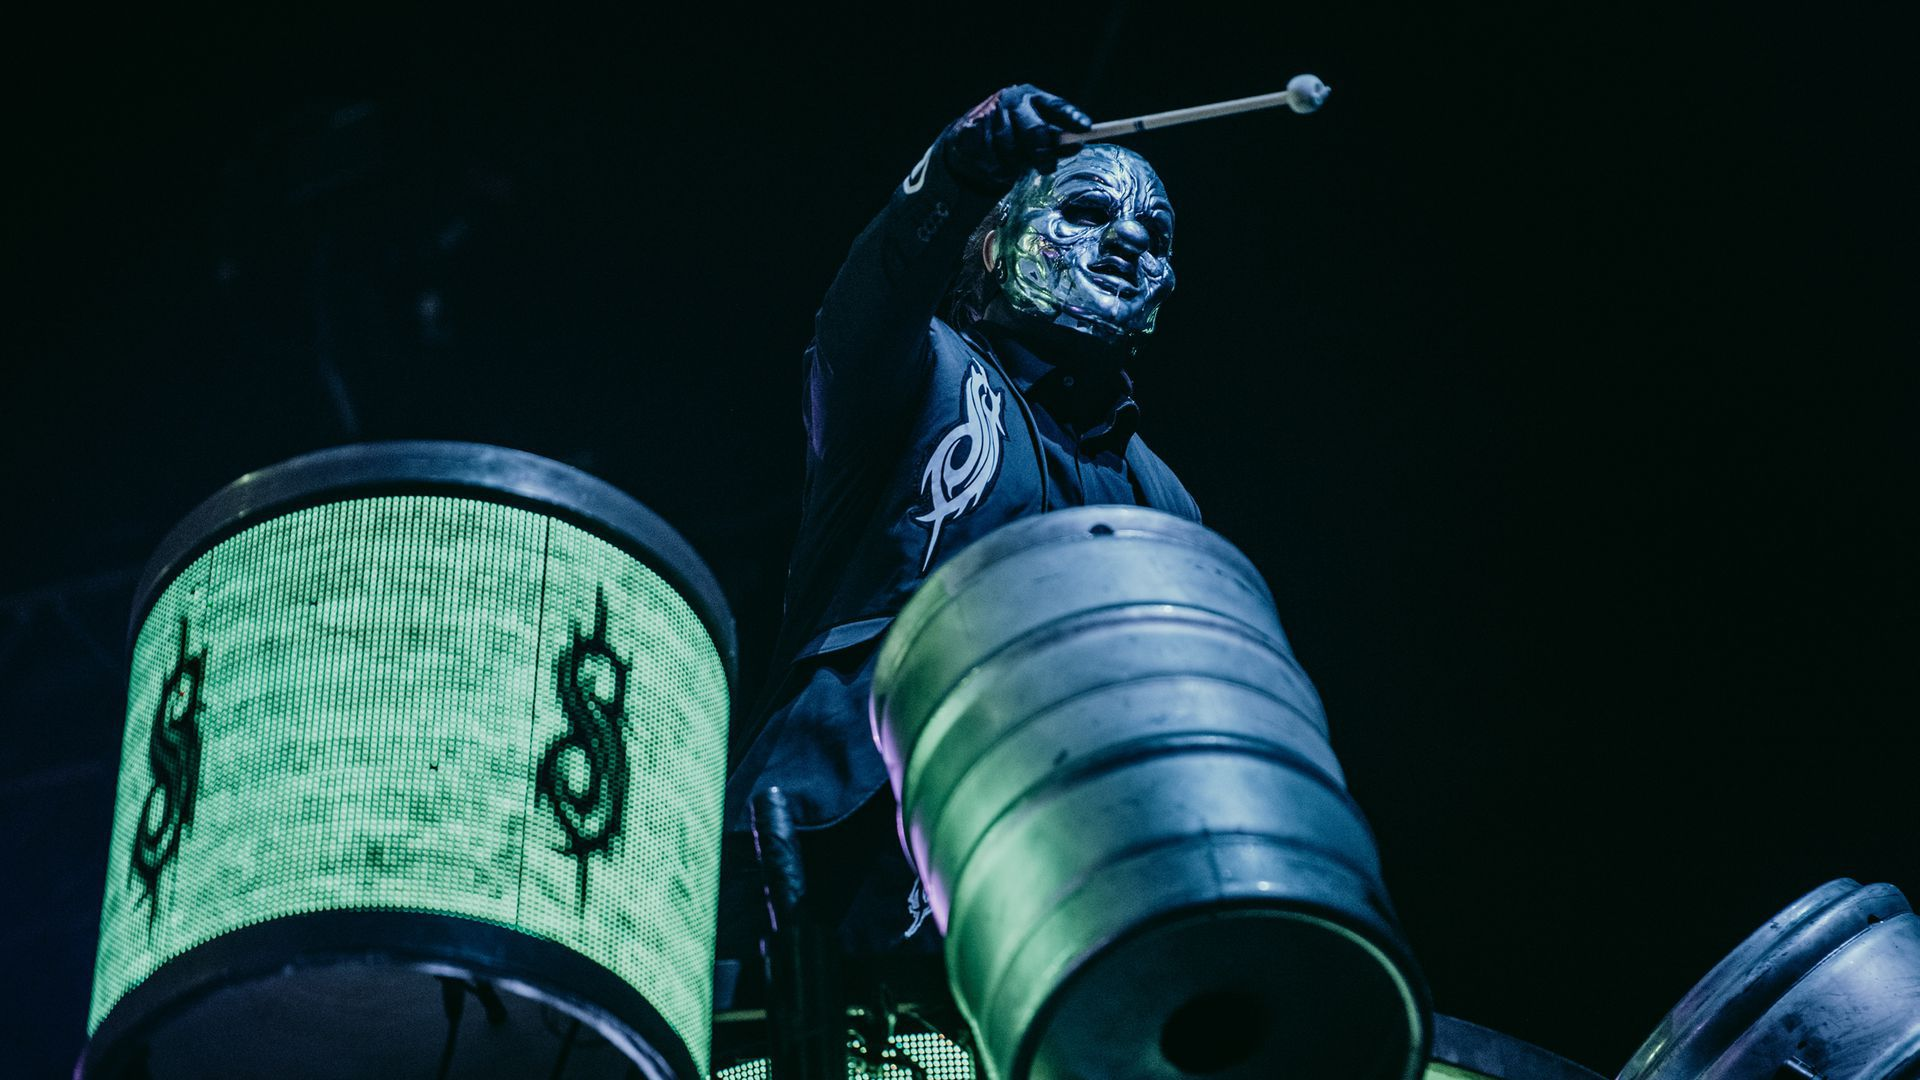 A member of Slipknot performs on the drums